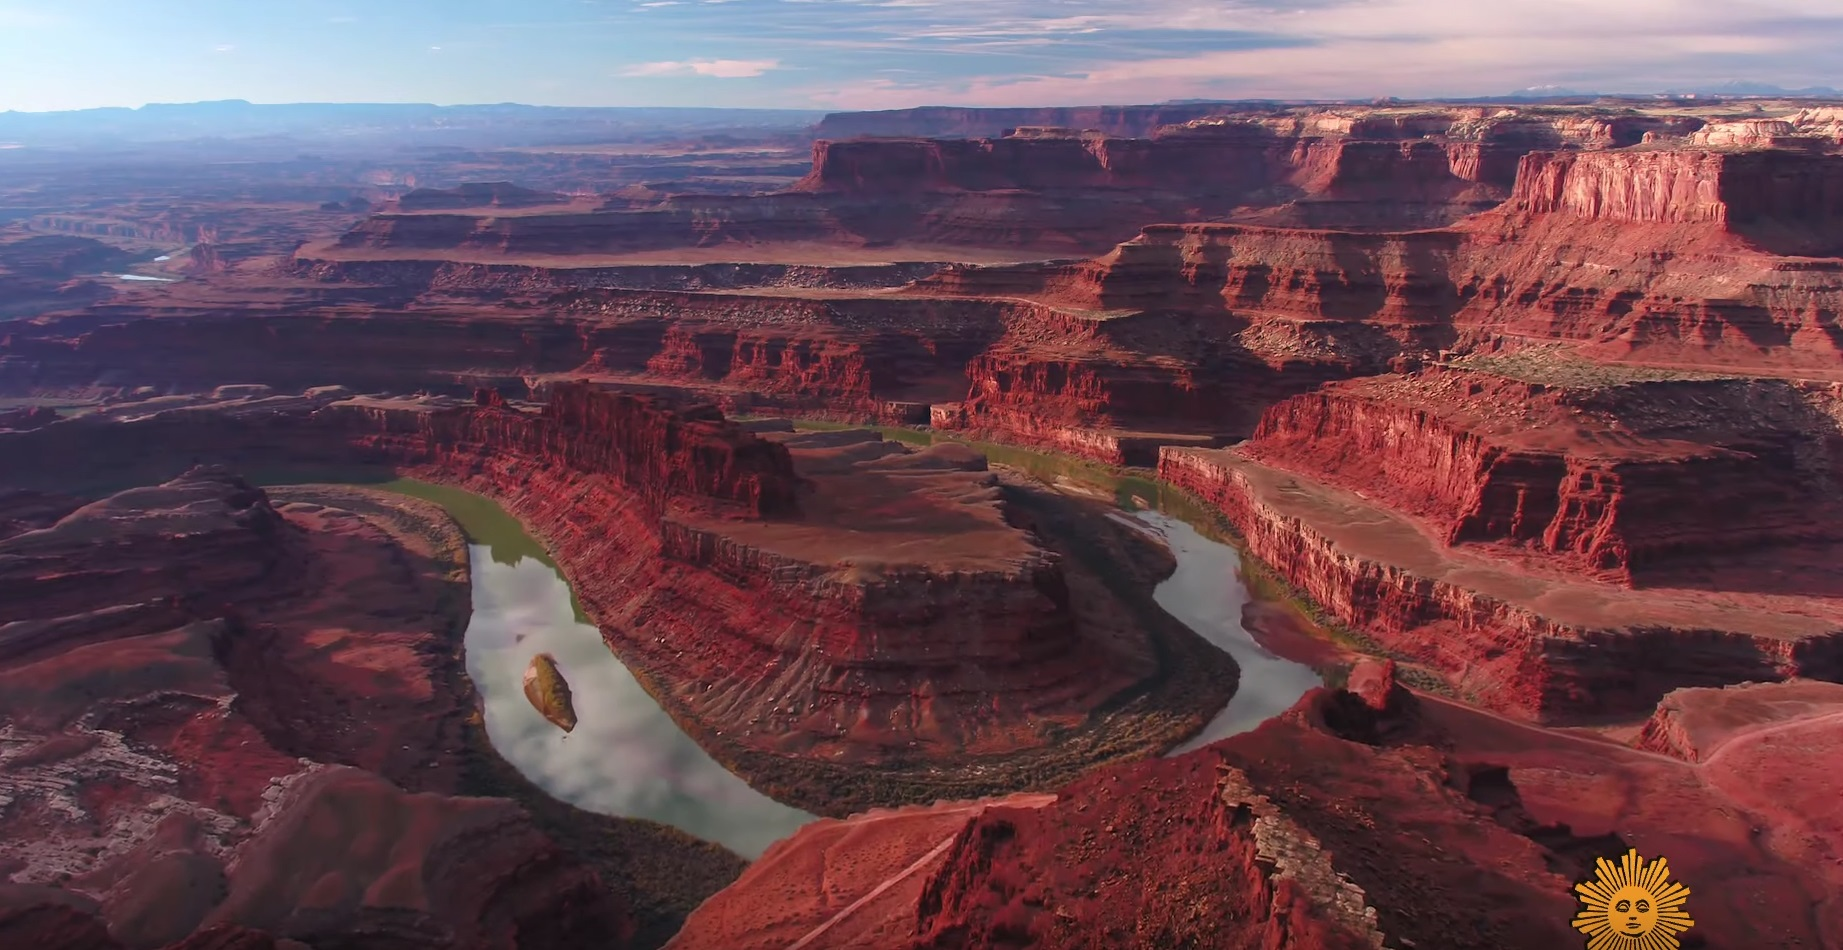 The Canyonlands National Park